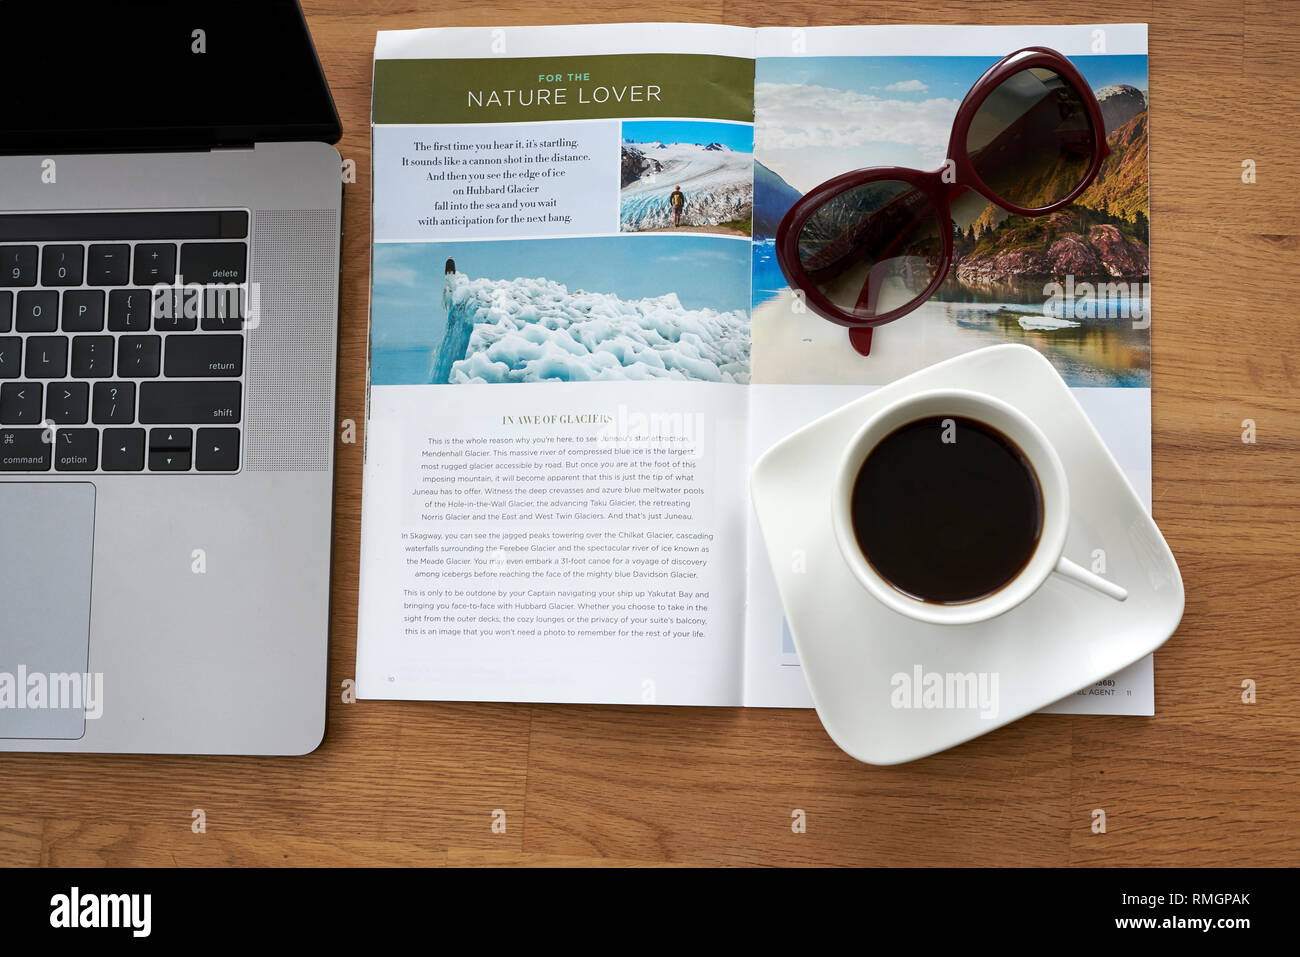 Travel section in a newspaper - planning holiday and new adventure in Alaska. Coffee, sunglasses, brochure and laptop on wooden table. - Stock Image